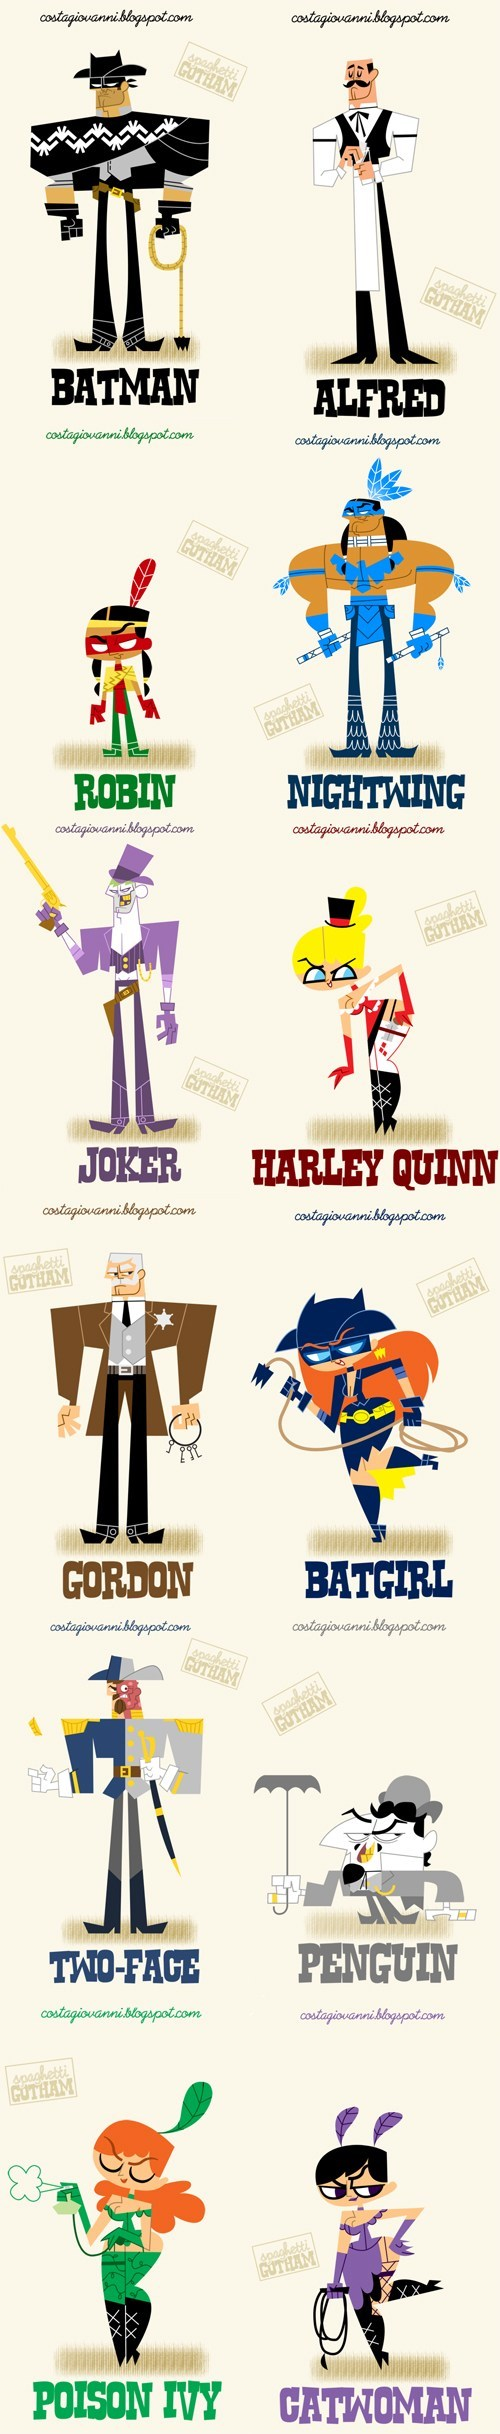 spaghetti westerns,two face,robin,the joker,Fan Art,alfred,catwoman,batman,Harley Quinn,poison ivy